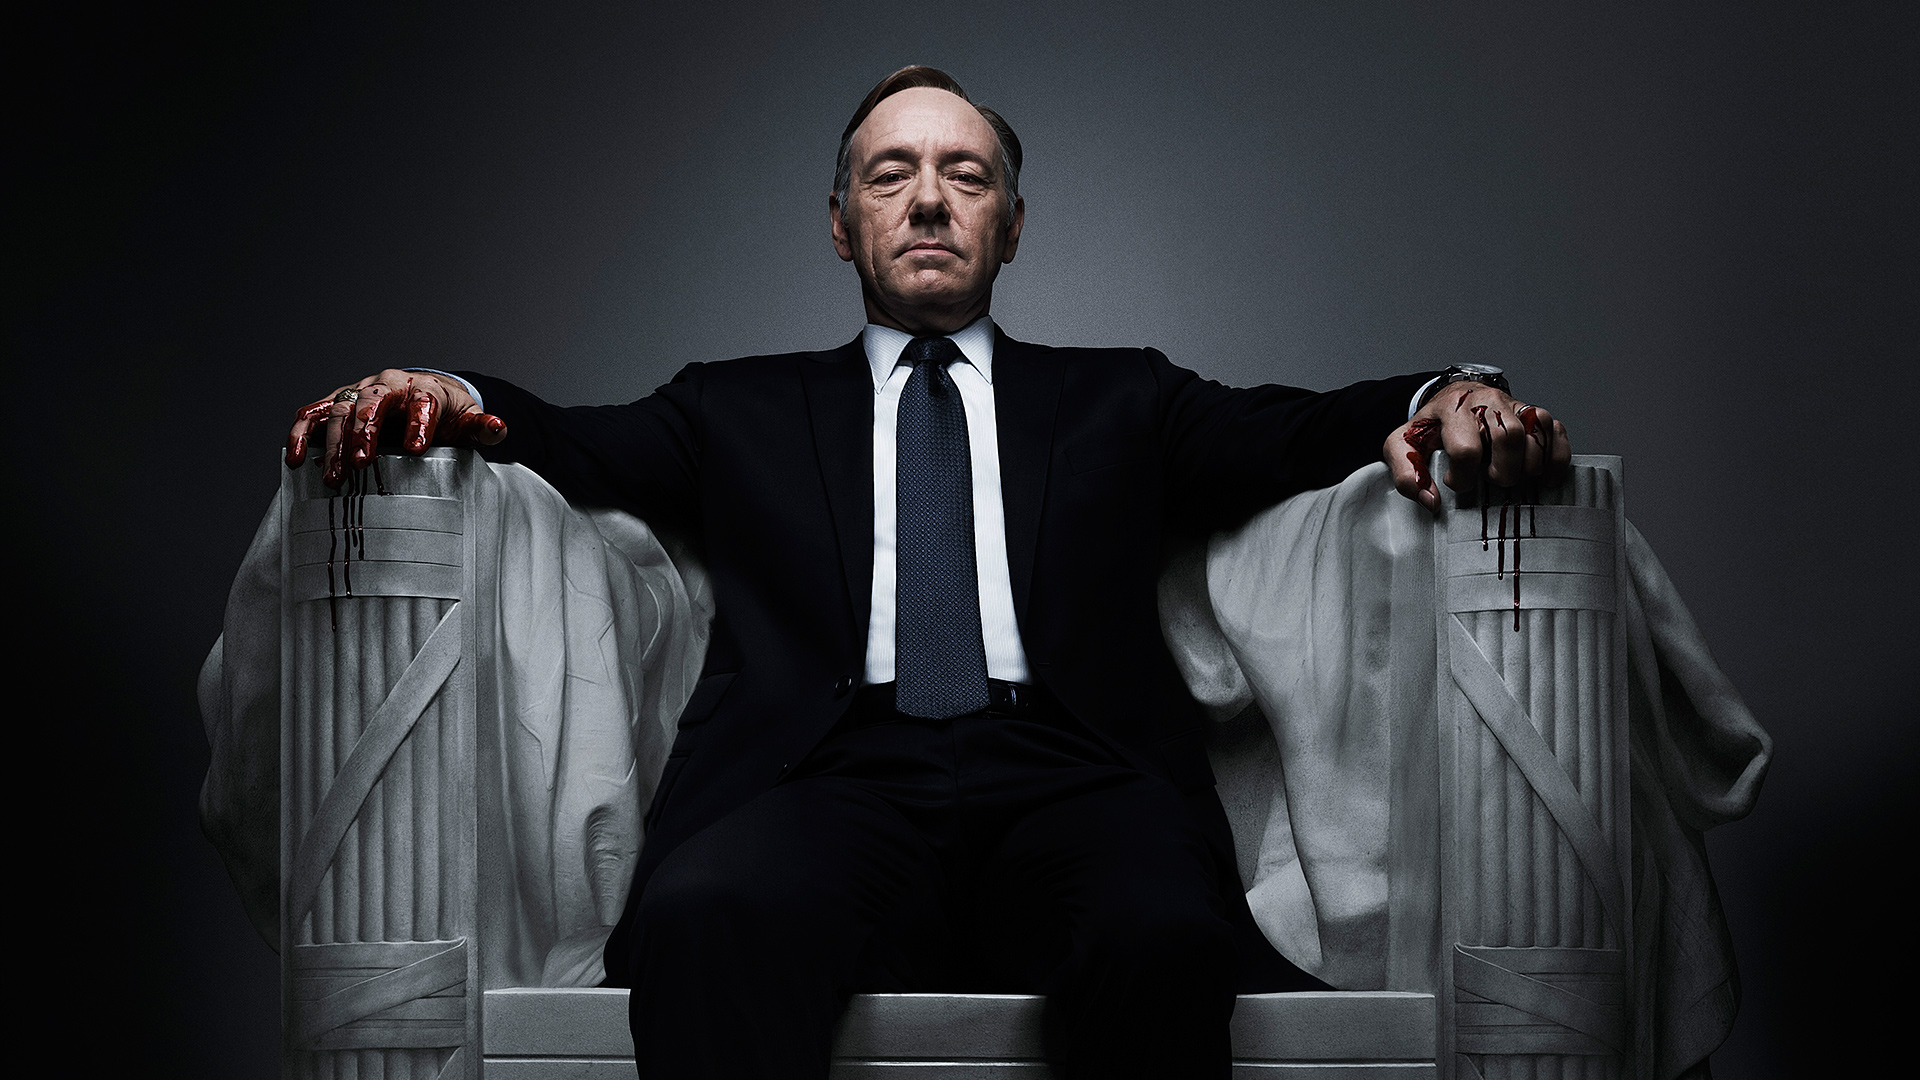 Kevin-Spacey-House-of-Cards-Netflix.jpg